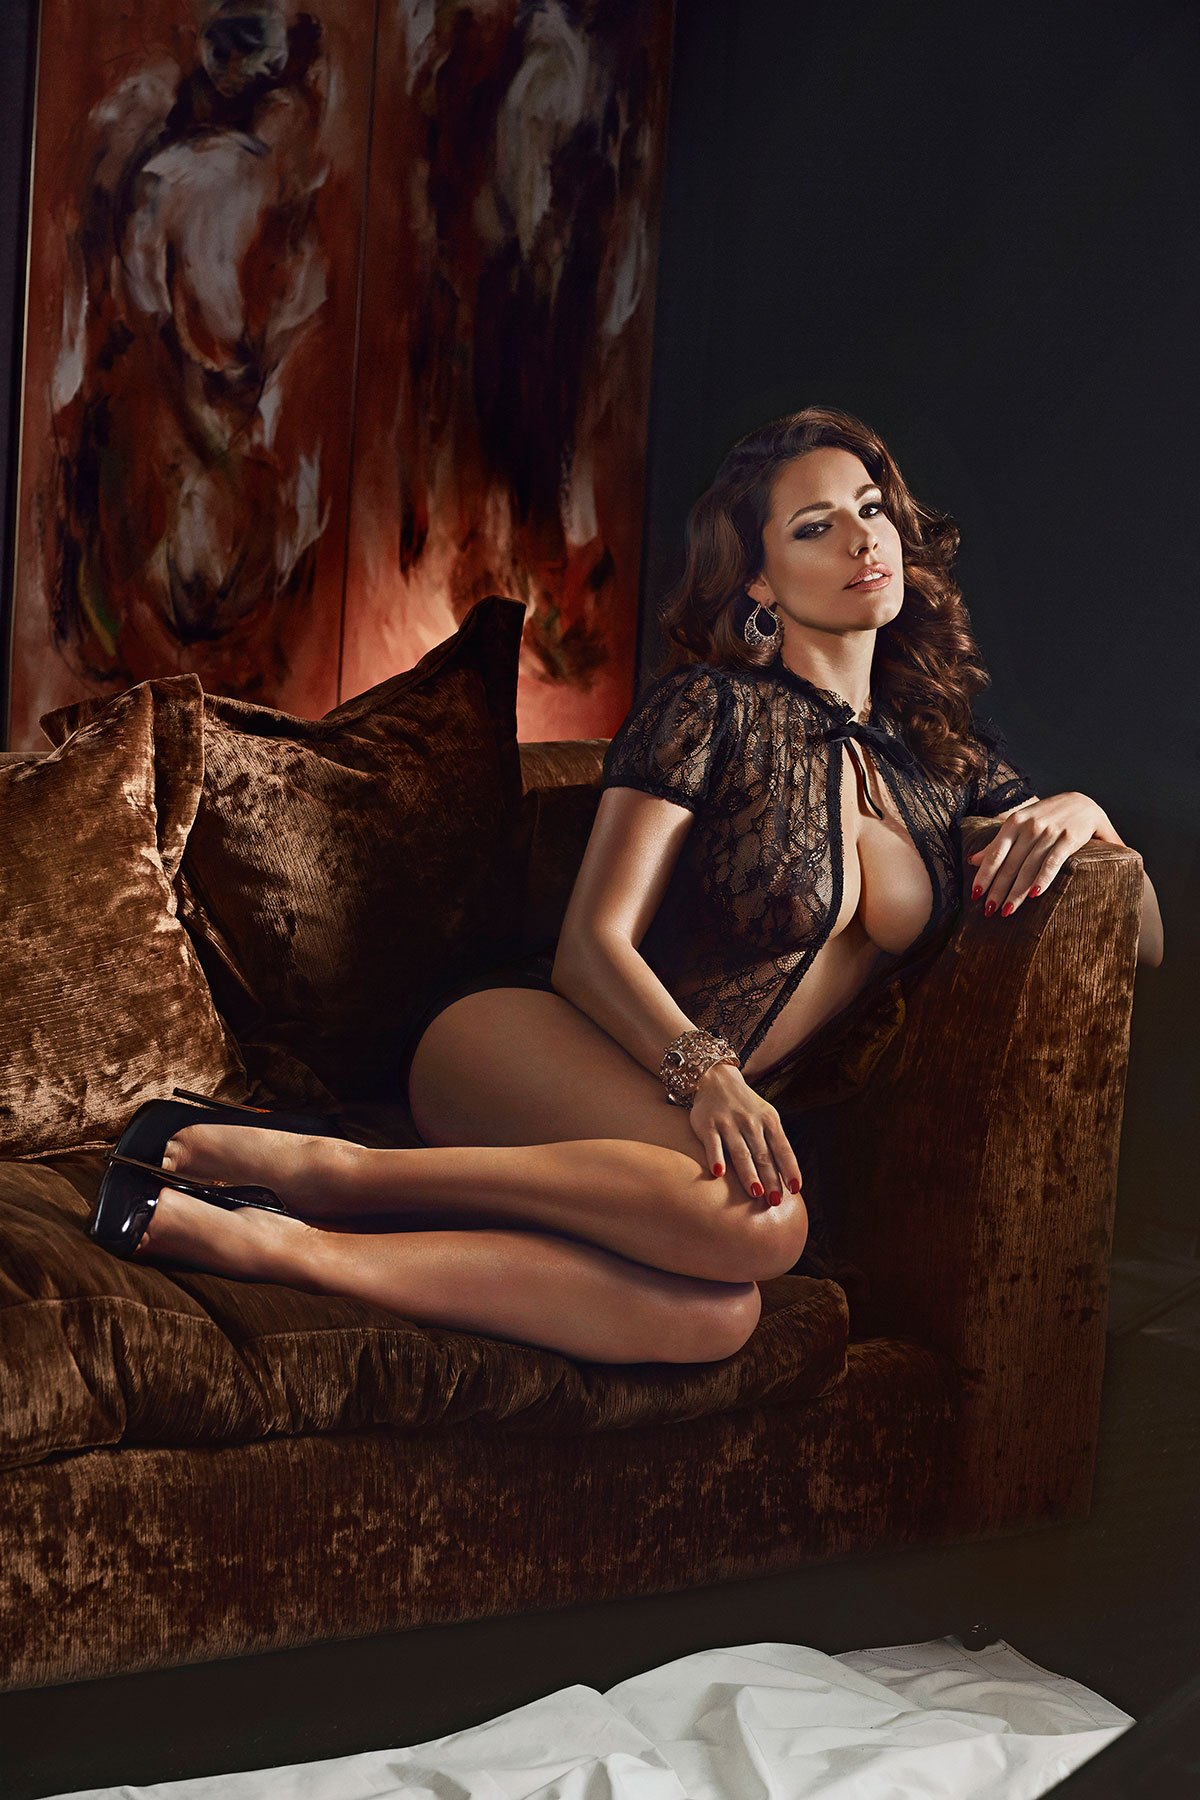 Sexy Kelly Brook 2014 Calendar Pictures - Sexy Actress Pictures | Hot Actress Pictures - ActressSnaps.com